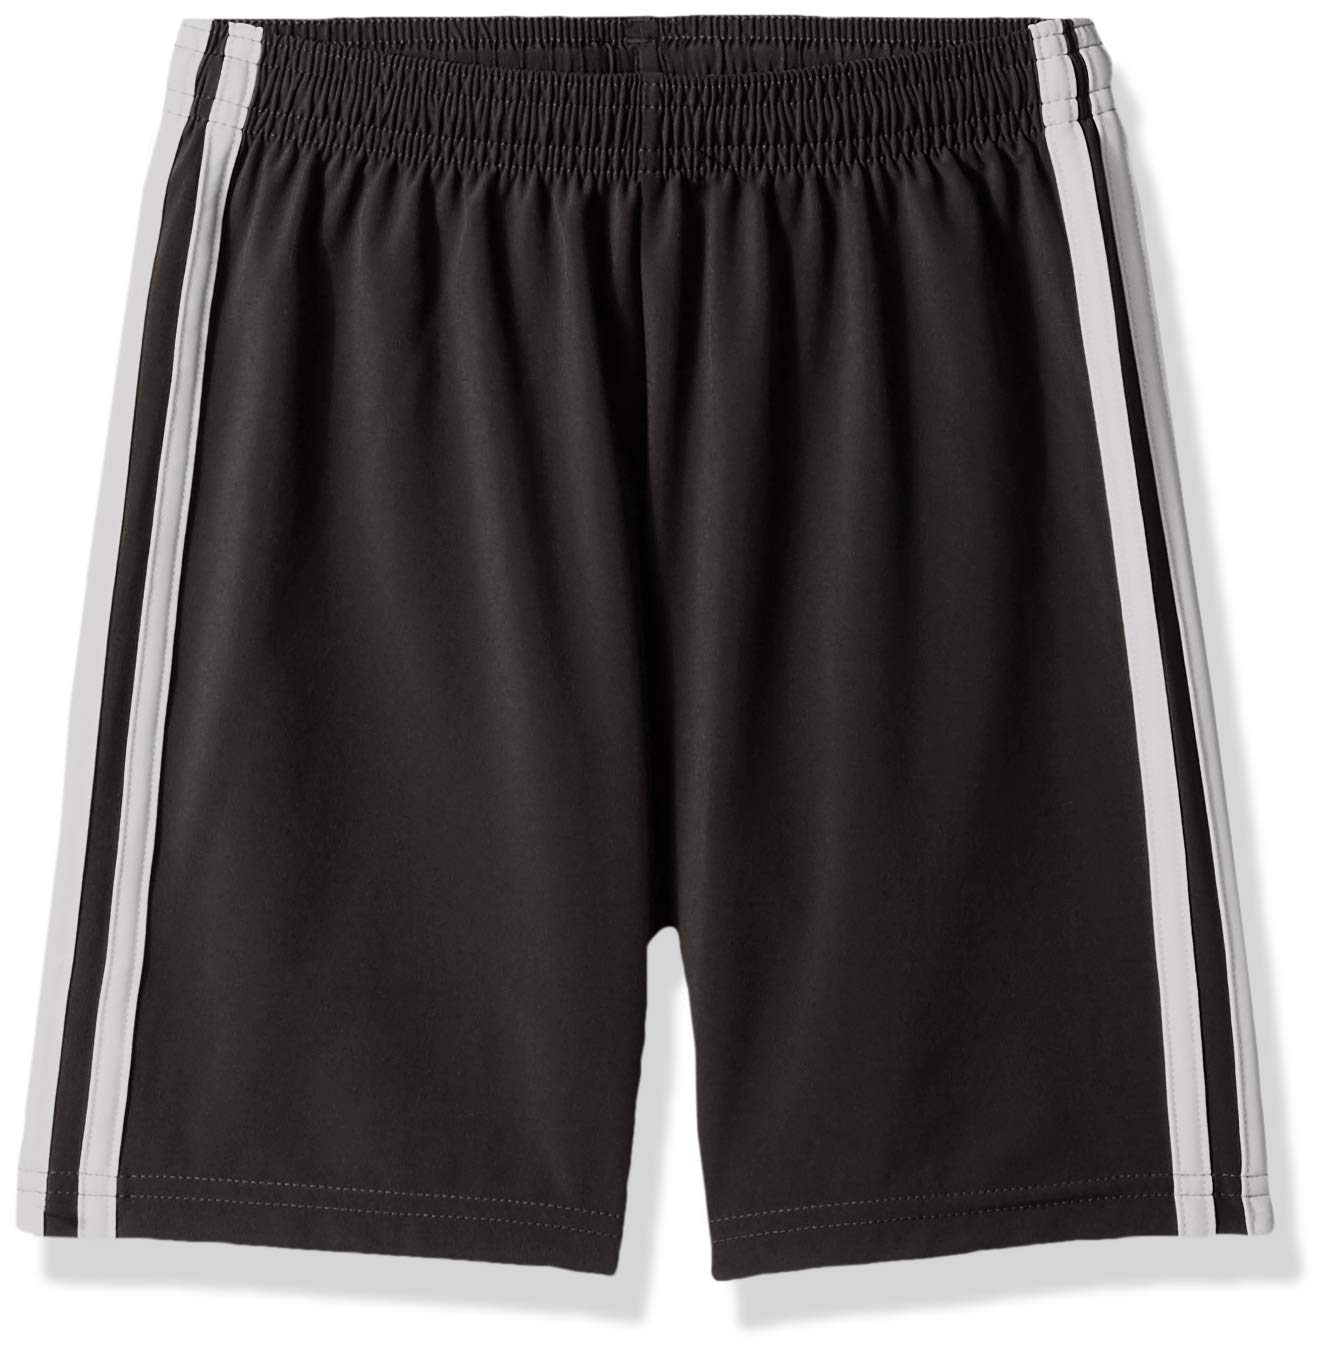 adidas Youth Condivo18 Youth Soccer Shorts, Black/Stone, X-Large by adidas